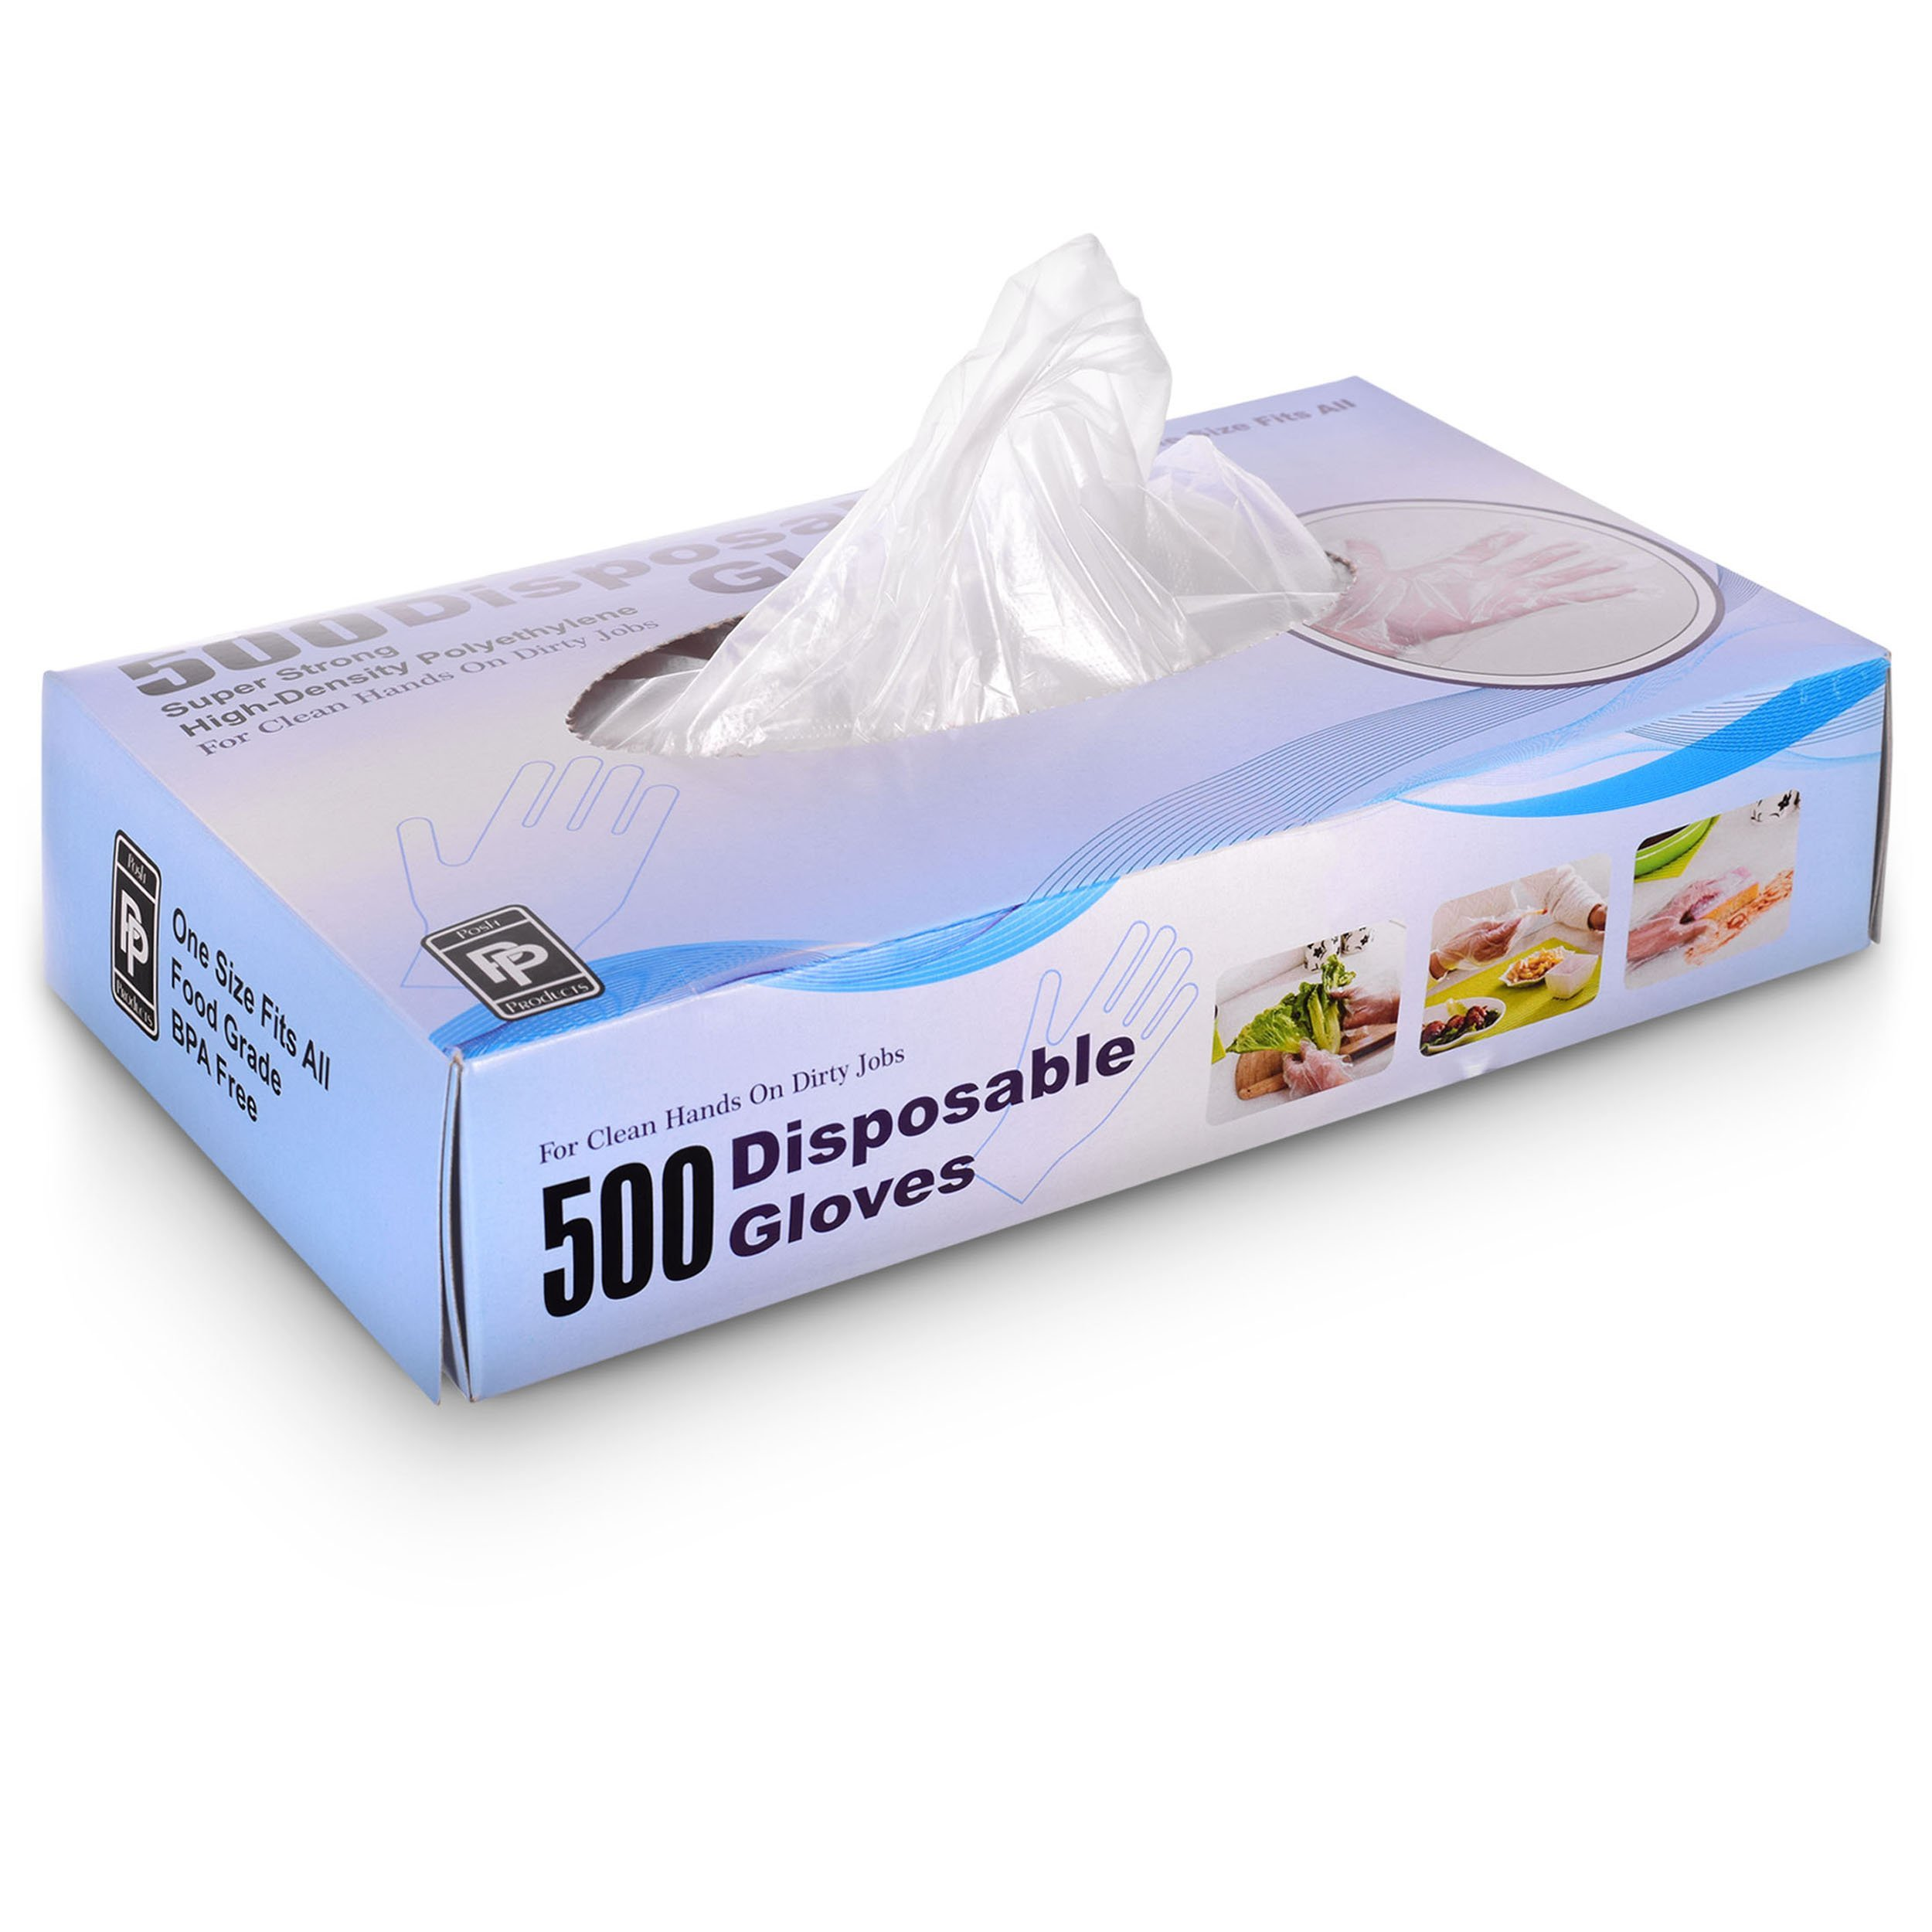 Disposable Poly Gloves, One Size Fits All, 500 ct, Great for Food Preparation, Latex Free, BPA Free Vinyl Gloves